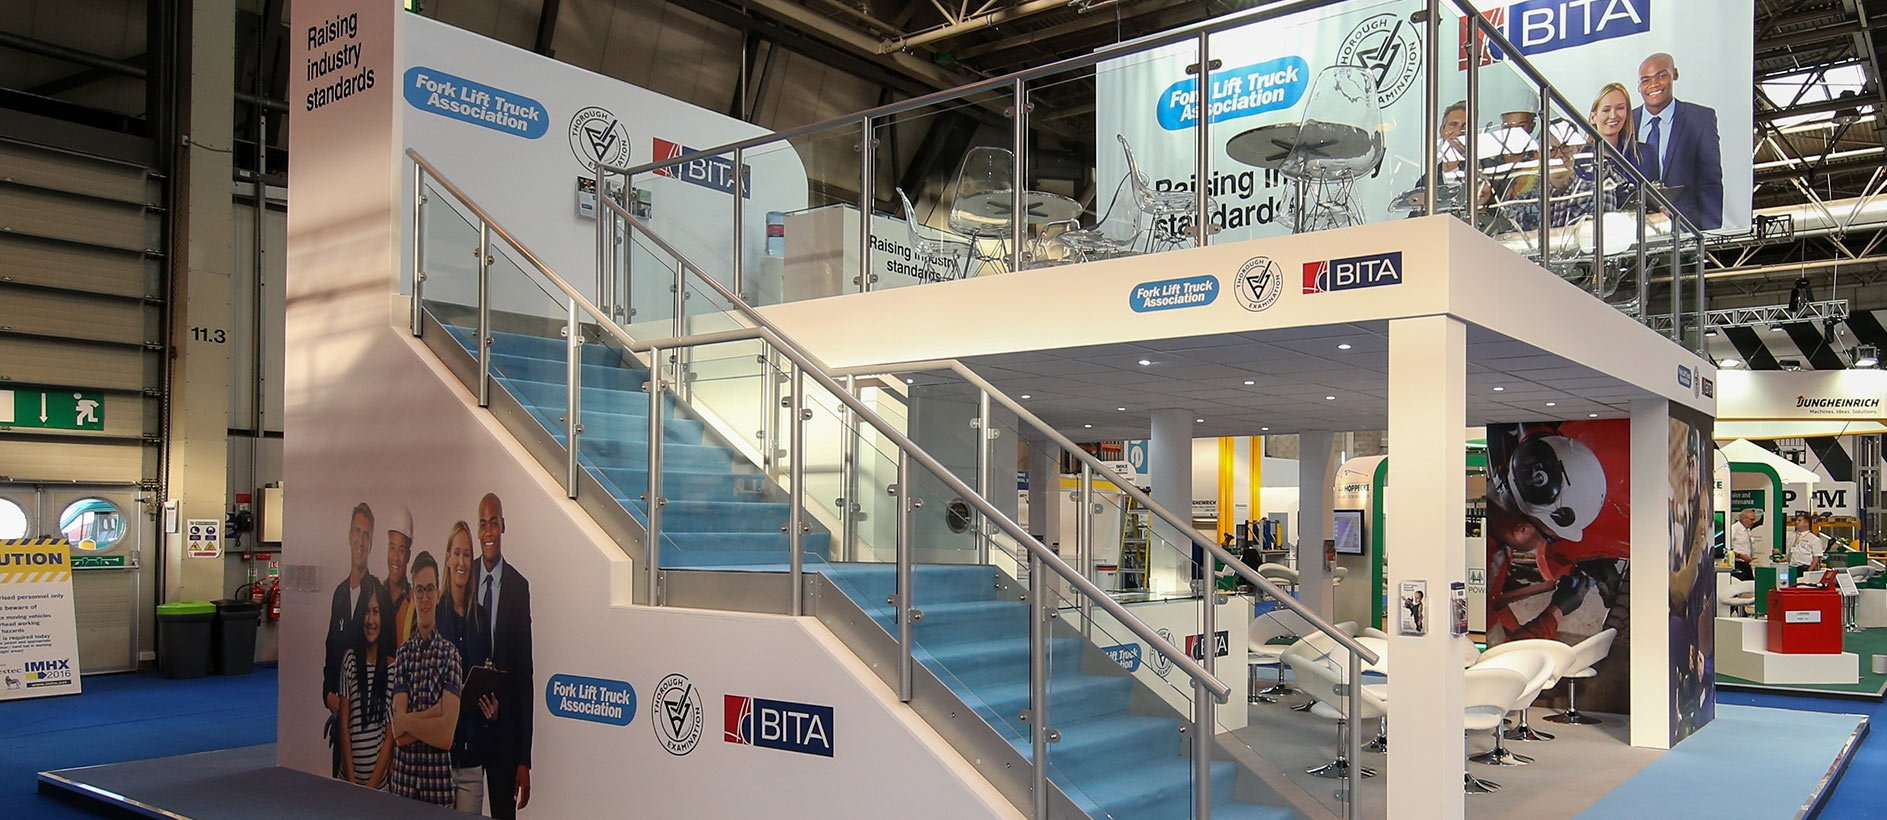 BITA exhibition stand at IMHX